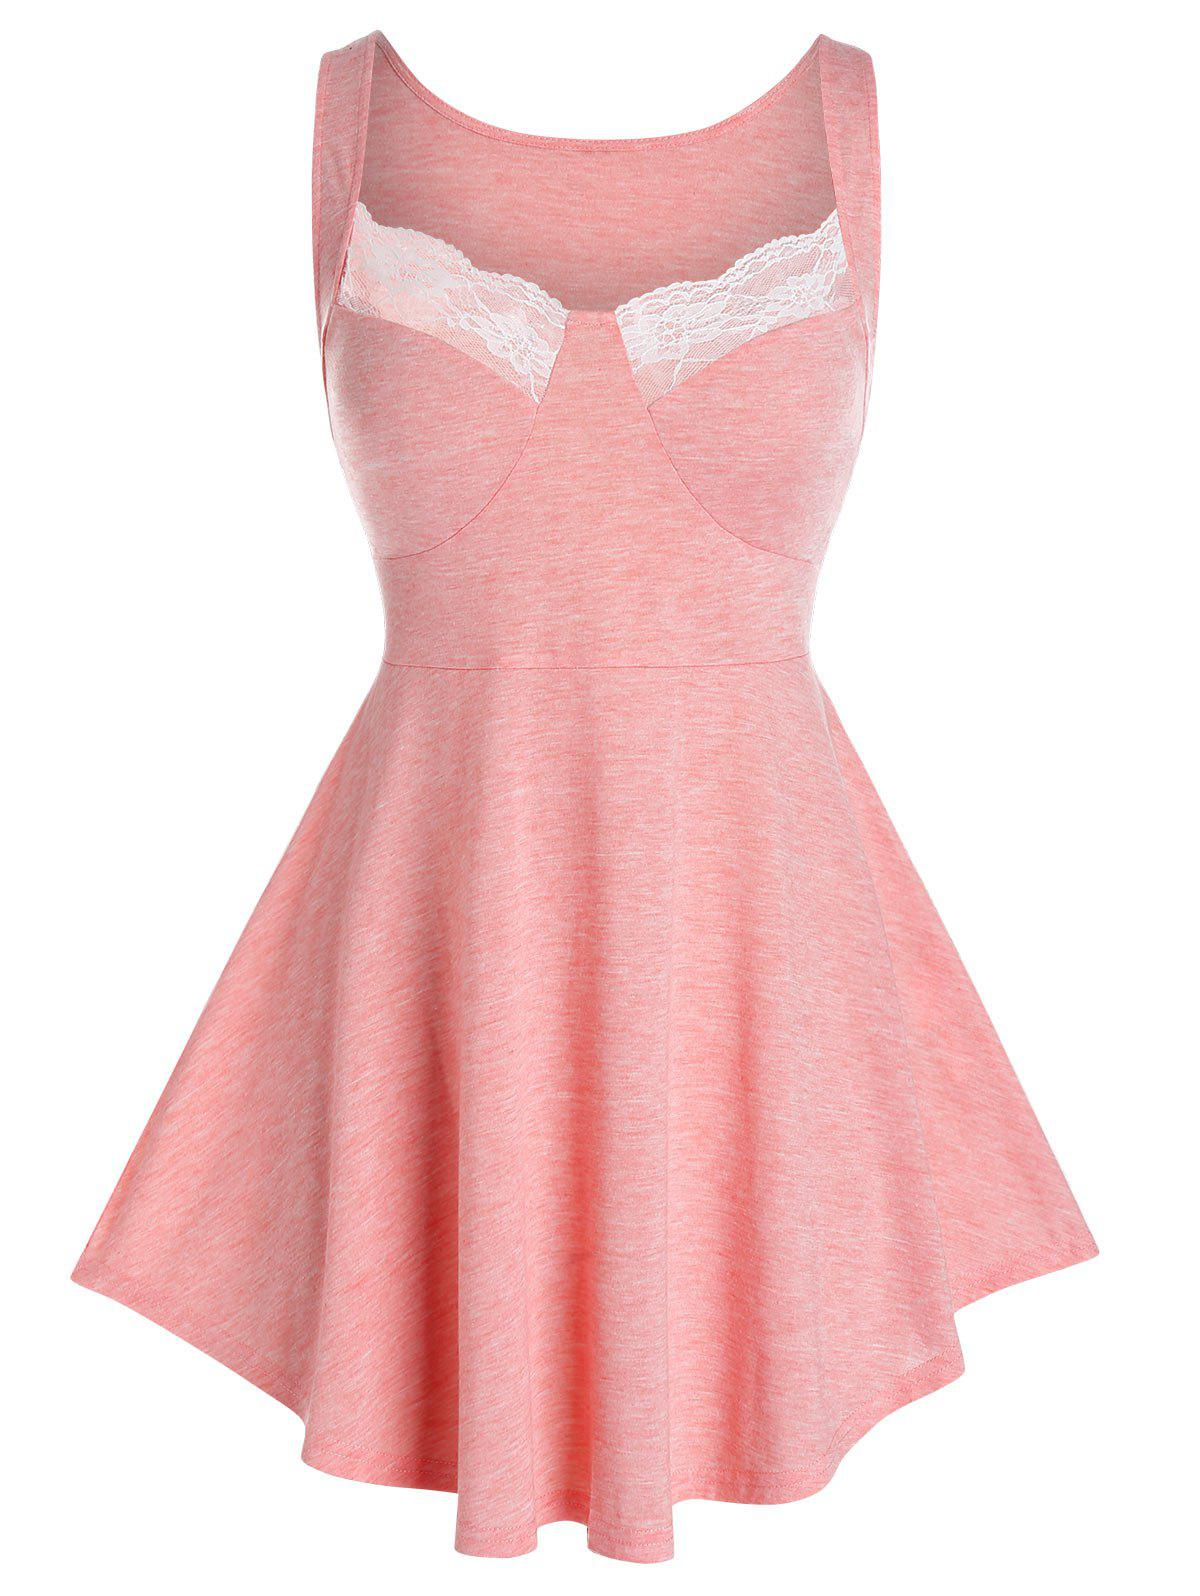 Plus Size Lace Panel Skirted Bustier Tank Top - FLAMINGO PINK 5X